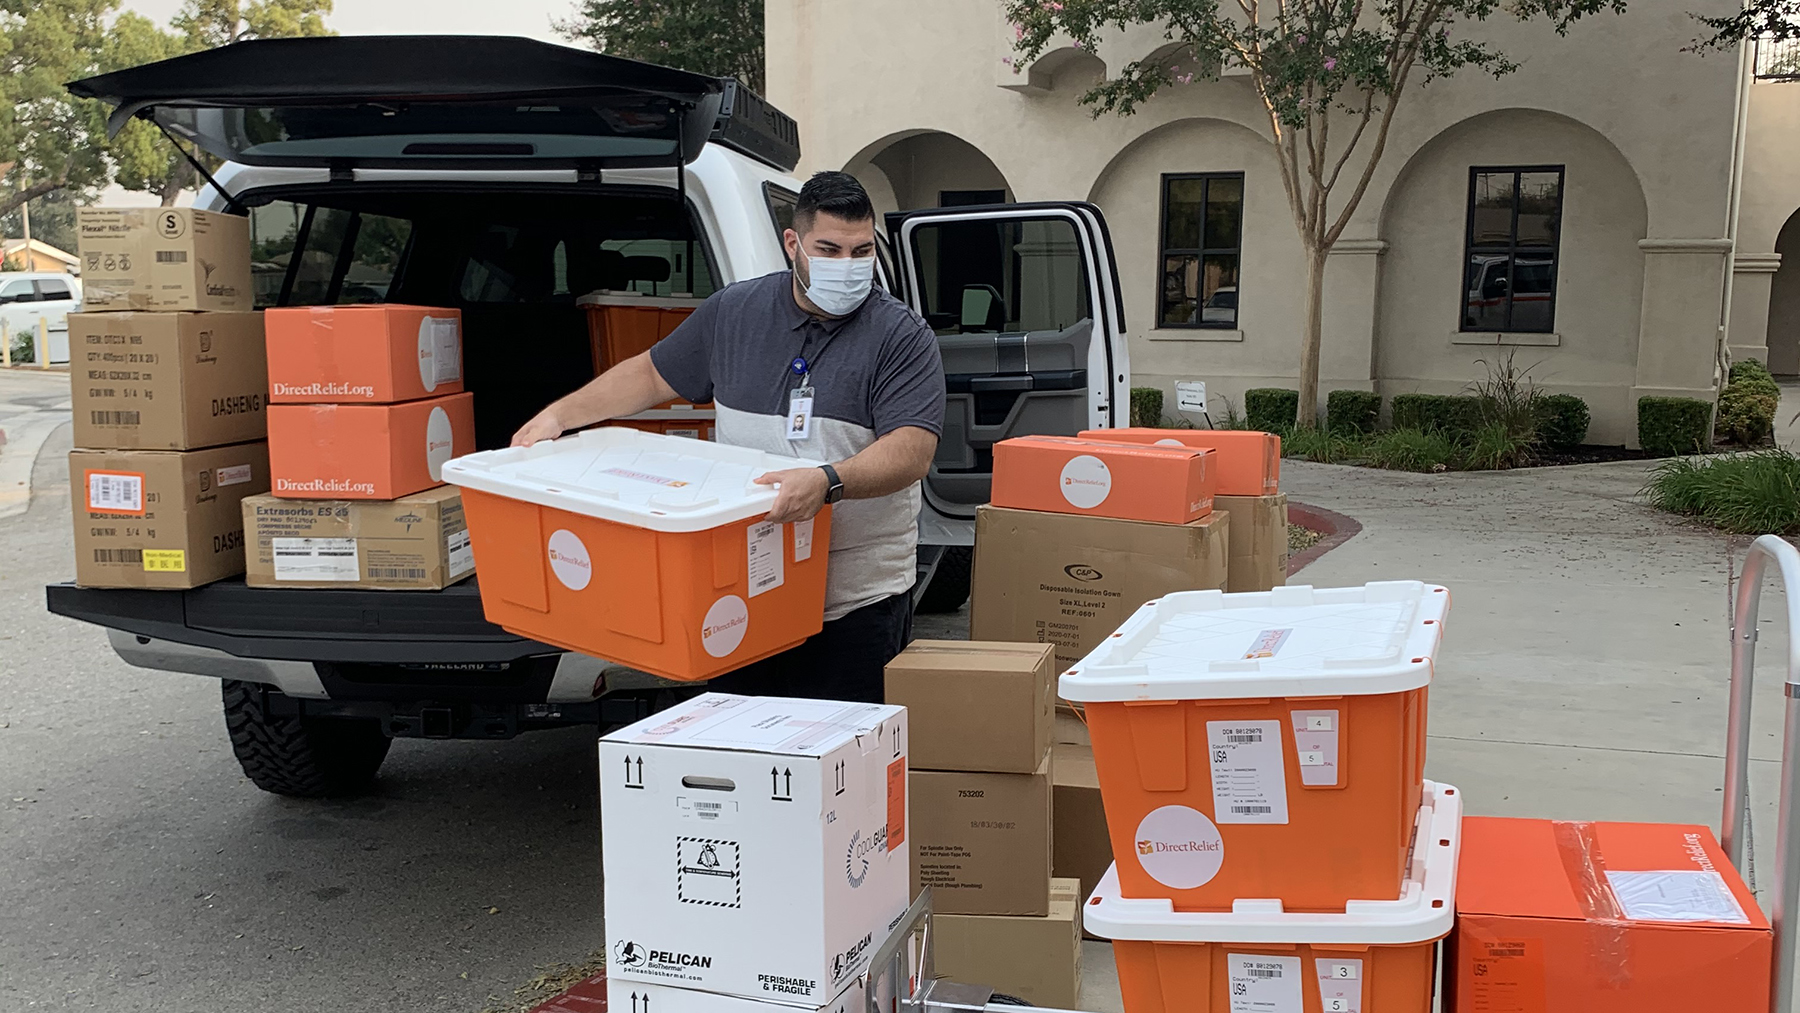 Requested medical supplies arrived at the Chino Valley Community Health Center in San Bernardino County, California, on Sept. 11, 2020. The El Dorado Fire is impacting air quality in the region, and supplies delivered to the health center included respiratory medicines, opthalmic supplies and other essentials often requested during fires. (Chris Alleway/Direct Relief)